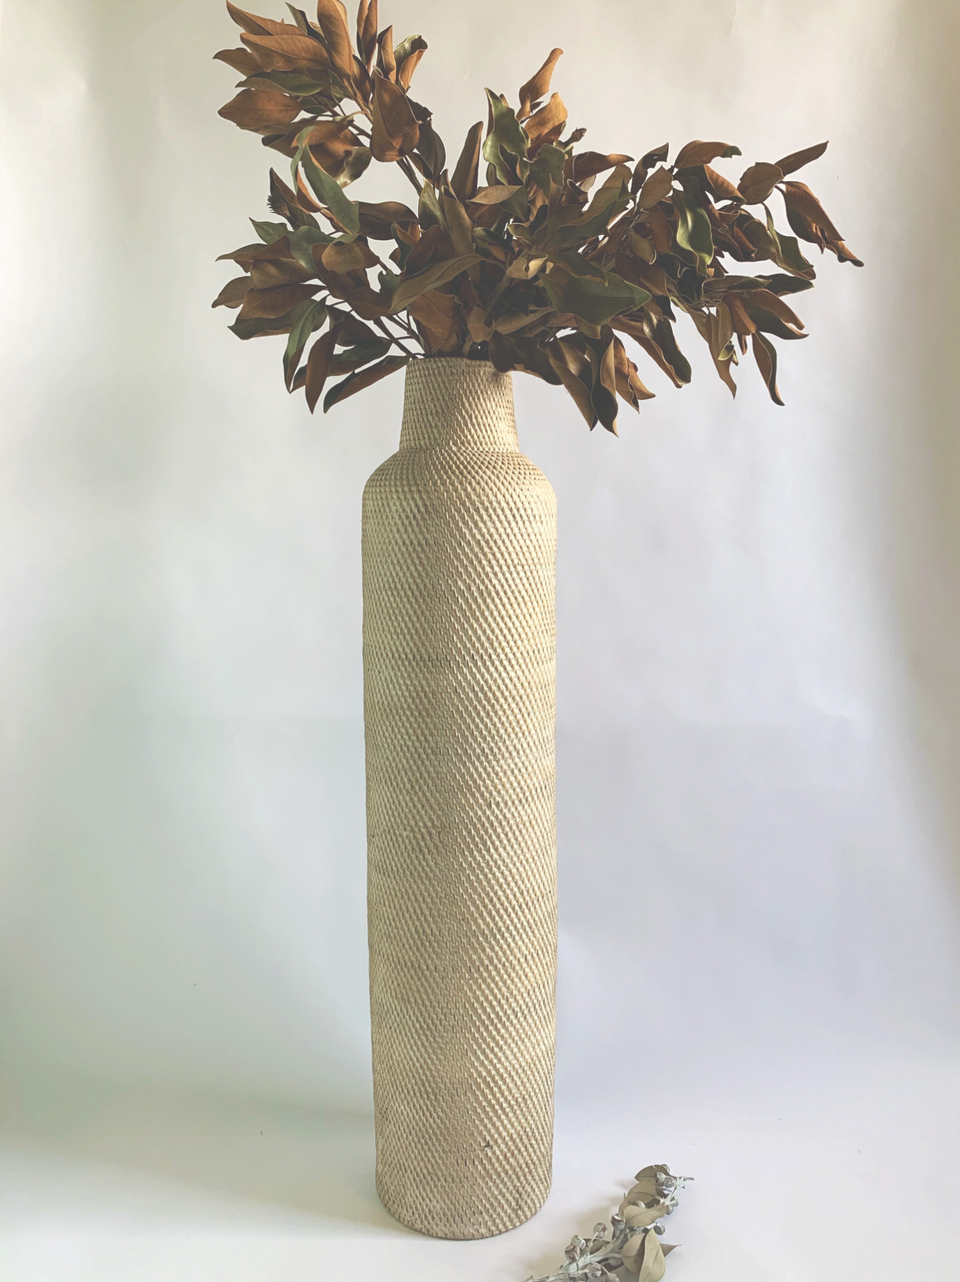 Basket Vase / Umbrella Holder - White Wash Rattan